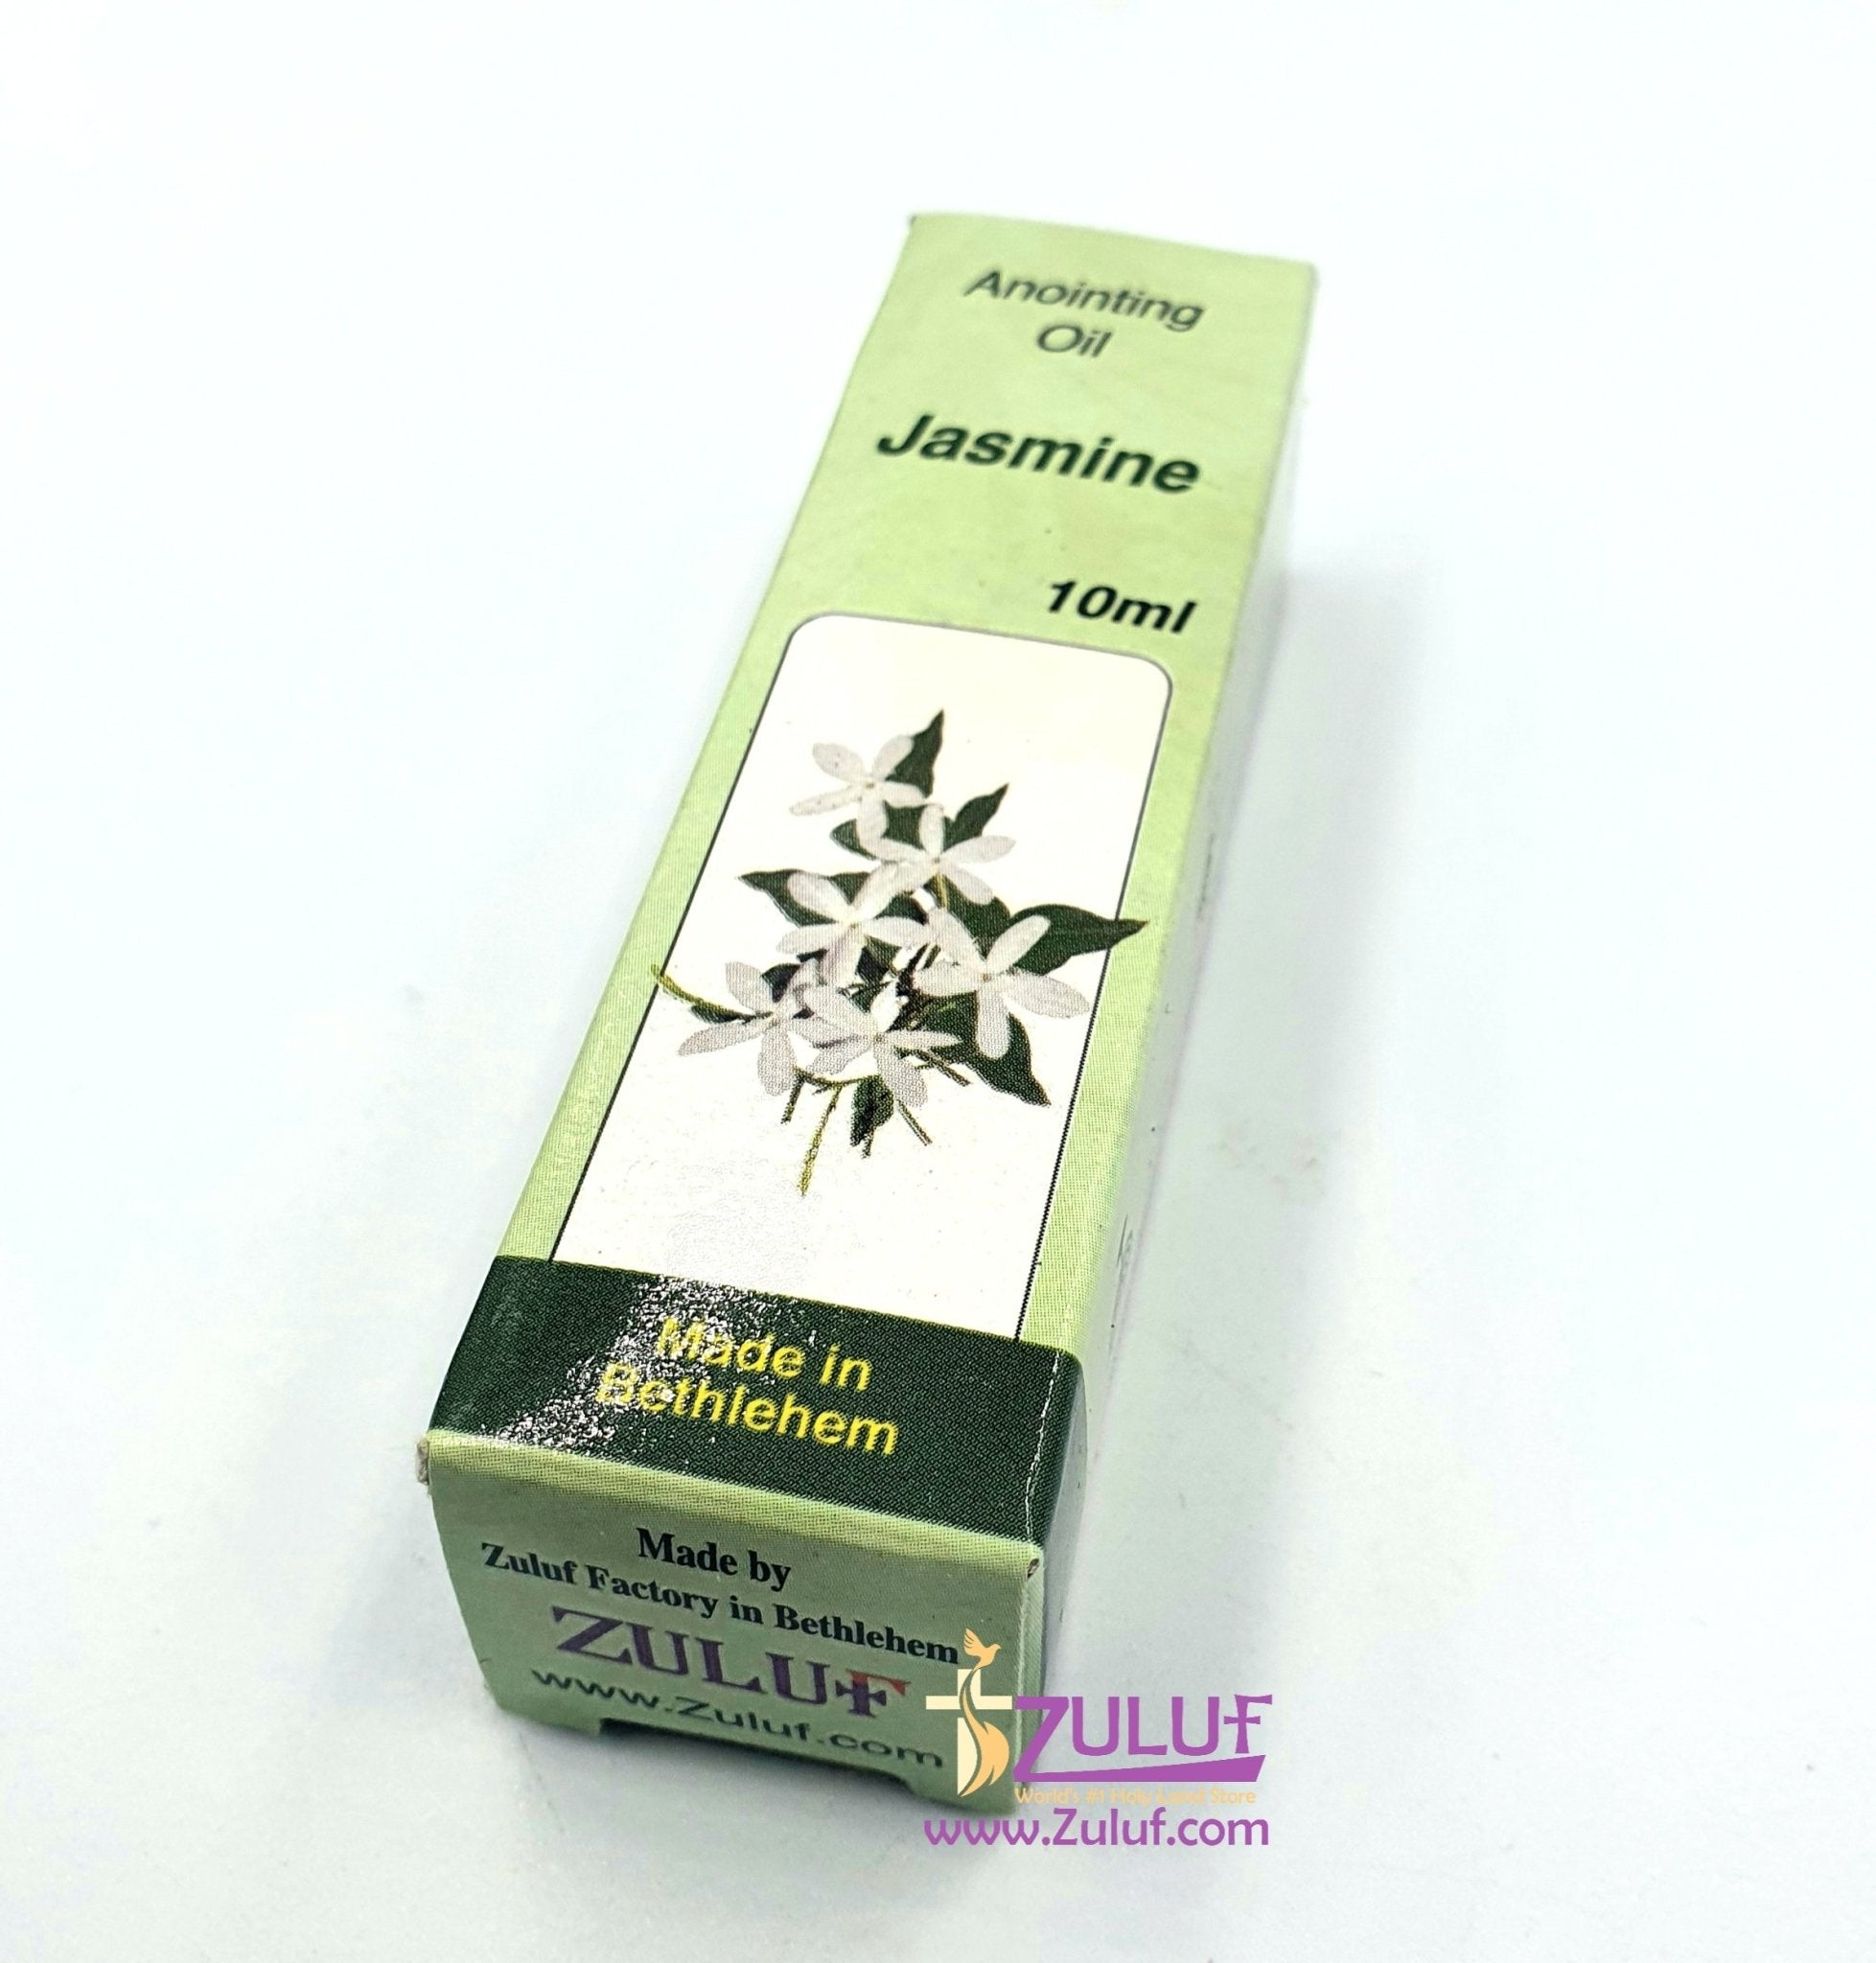 Jasmine Anointing Oil Holy Land Zuluf - PER010 - Zuluf